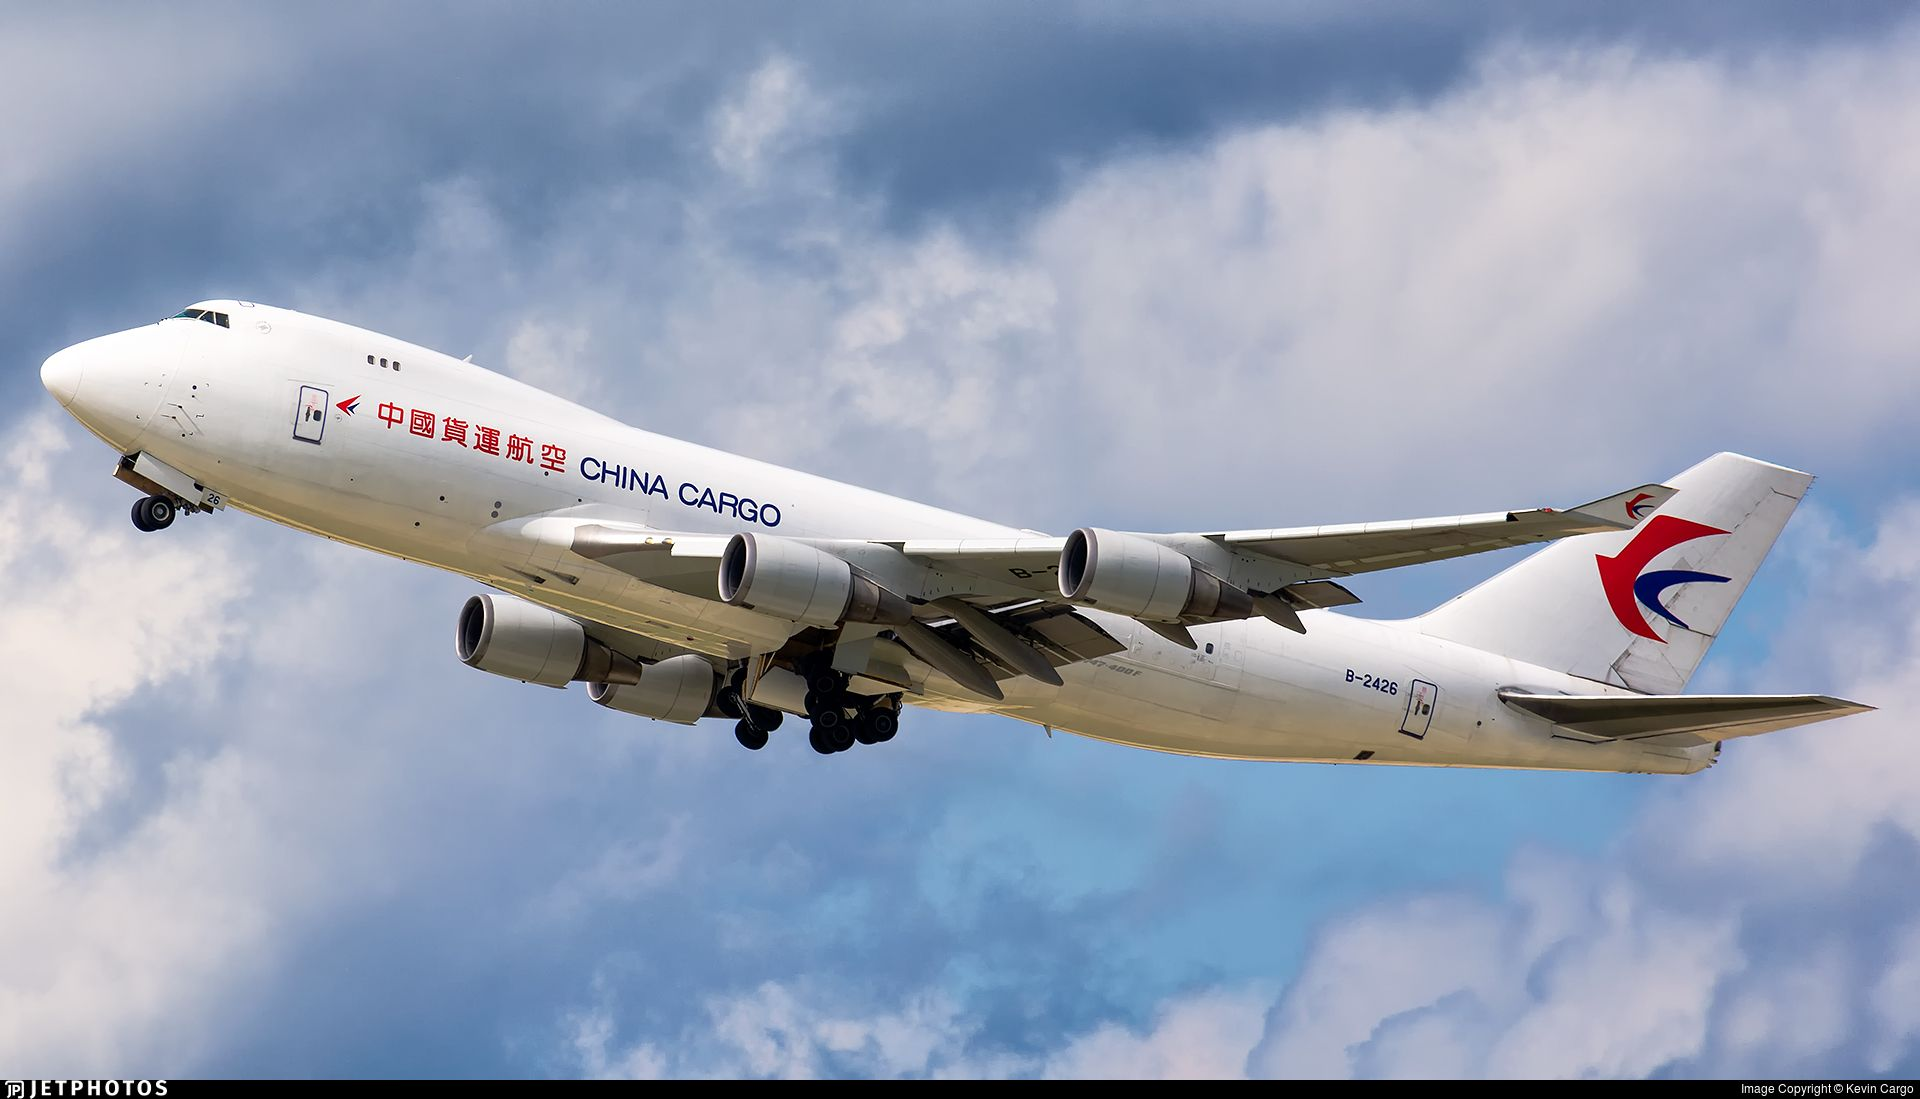 Airline China Cargo Airlines Registration B2426